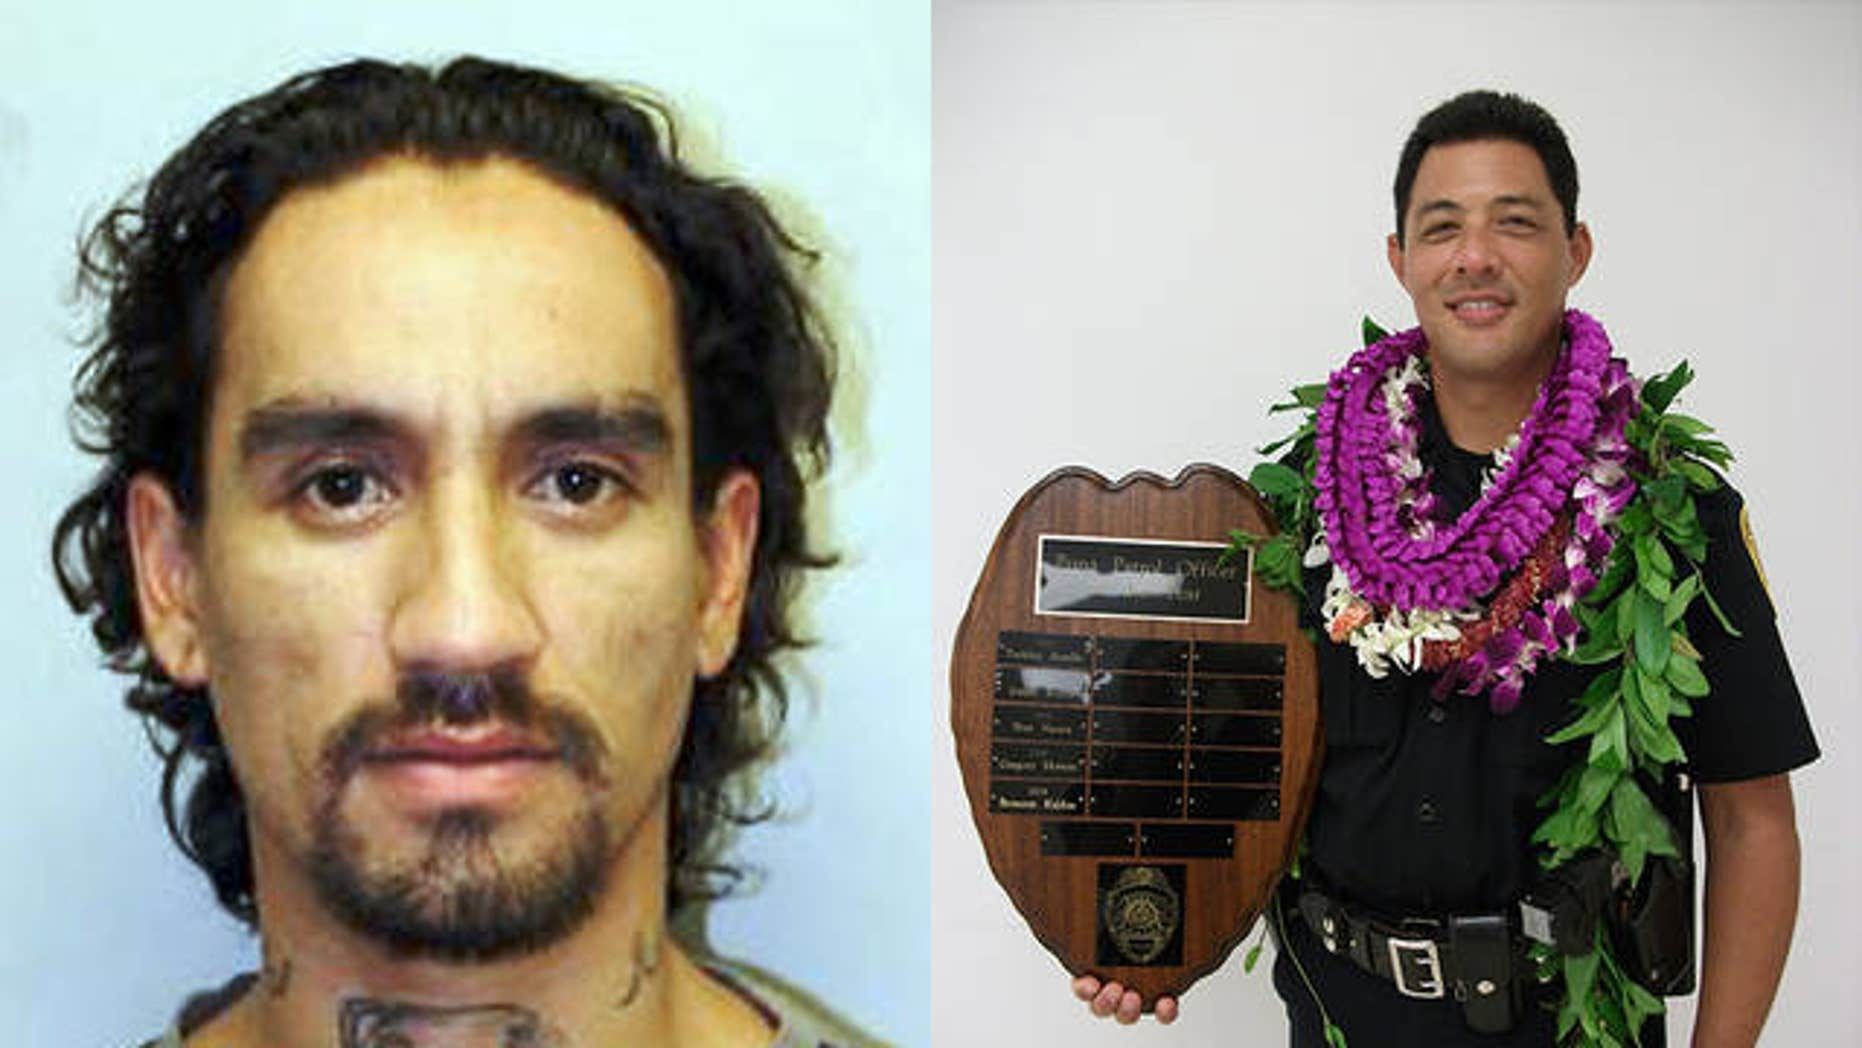 Hawaii's entire Big Island police force led a three-day search for Justin Waiki, left, who was suspected of killing of Hawaii County police Officer Bronson Kaliloa during a traffic stop on Tuesday.